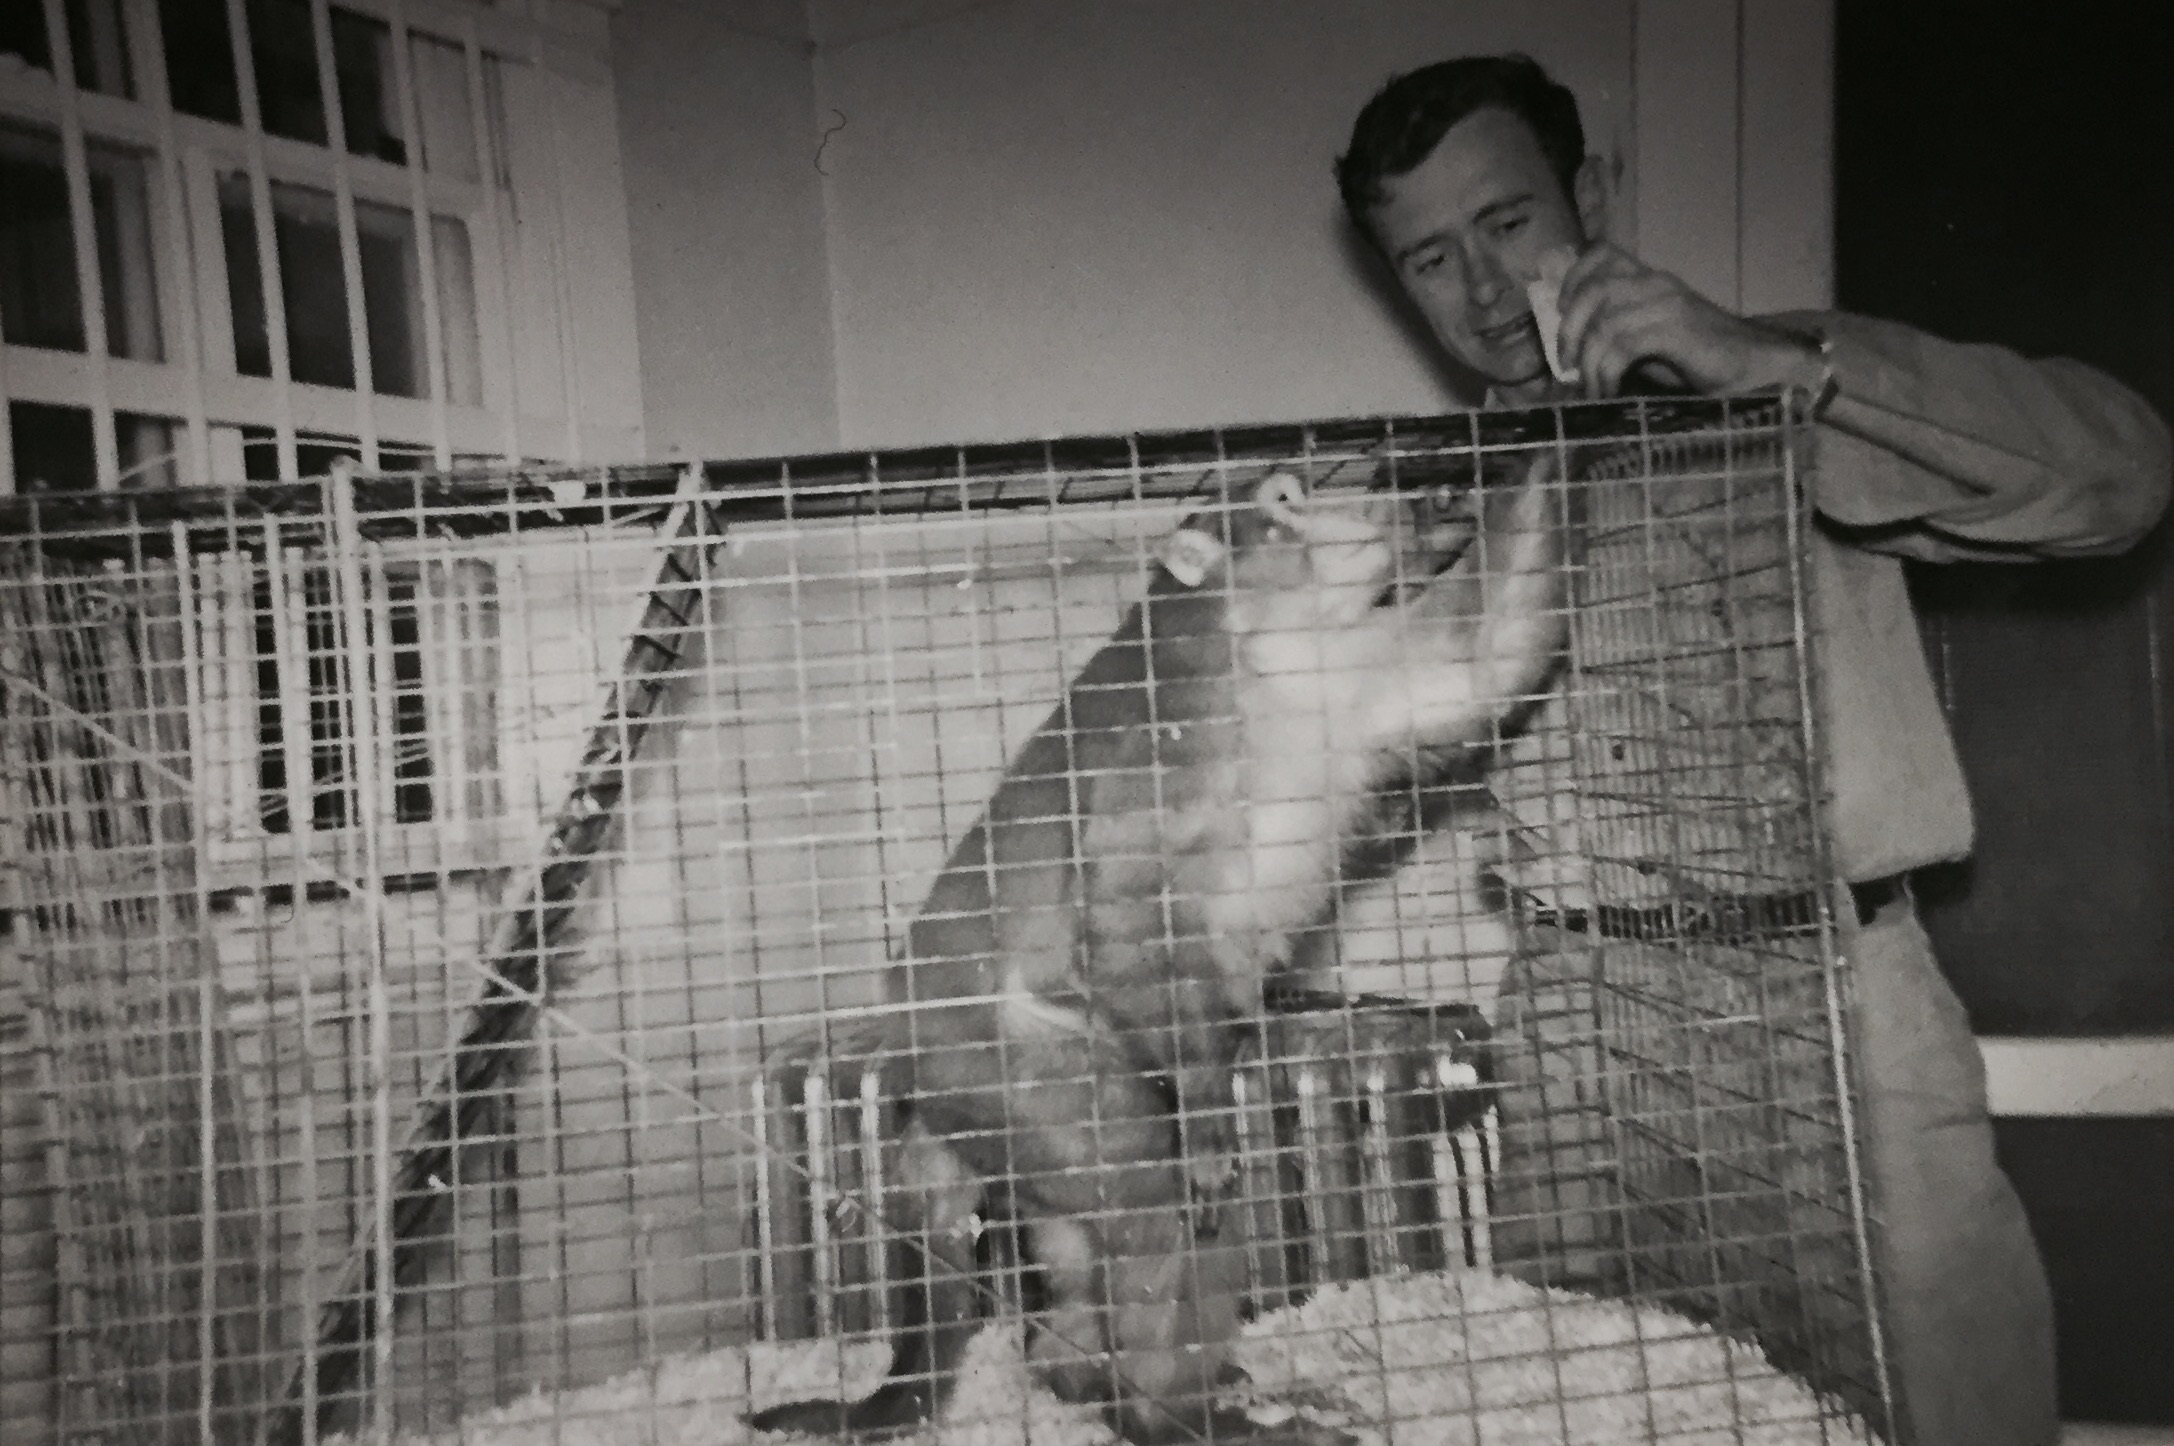 Joe, the rhesus macaque, enjoying a snack in the old Bruce Museum zoo.